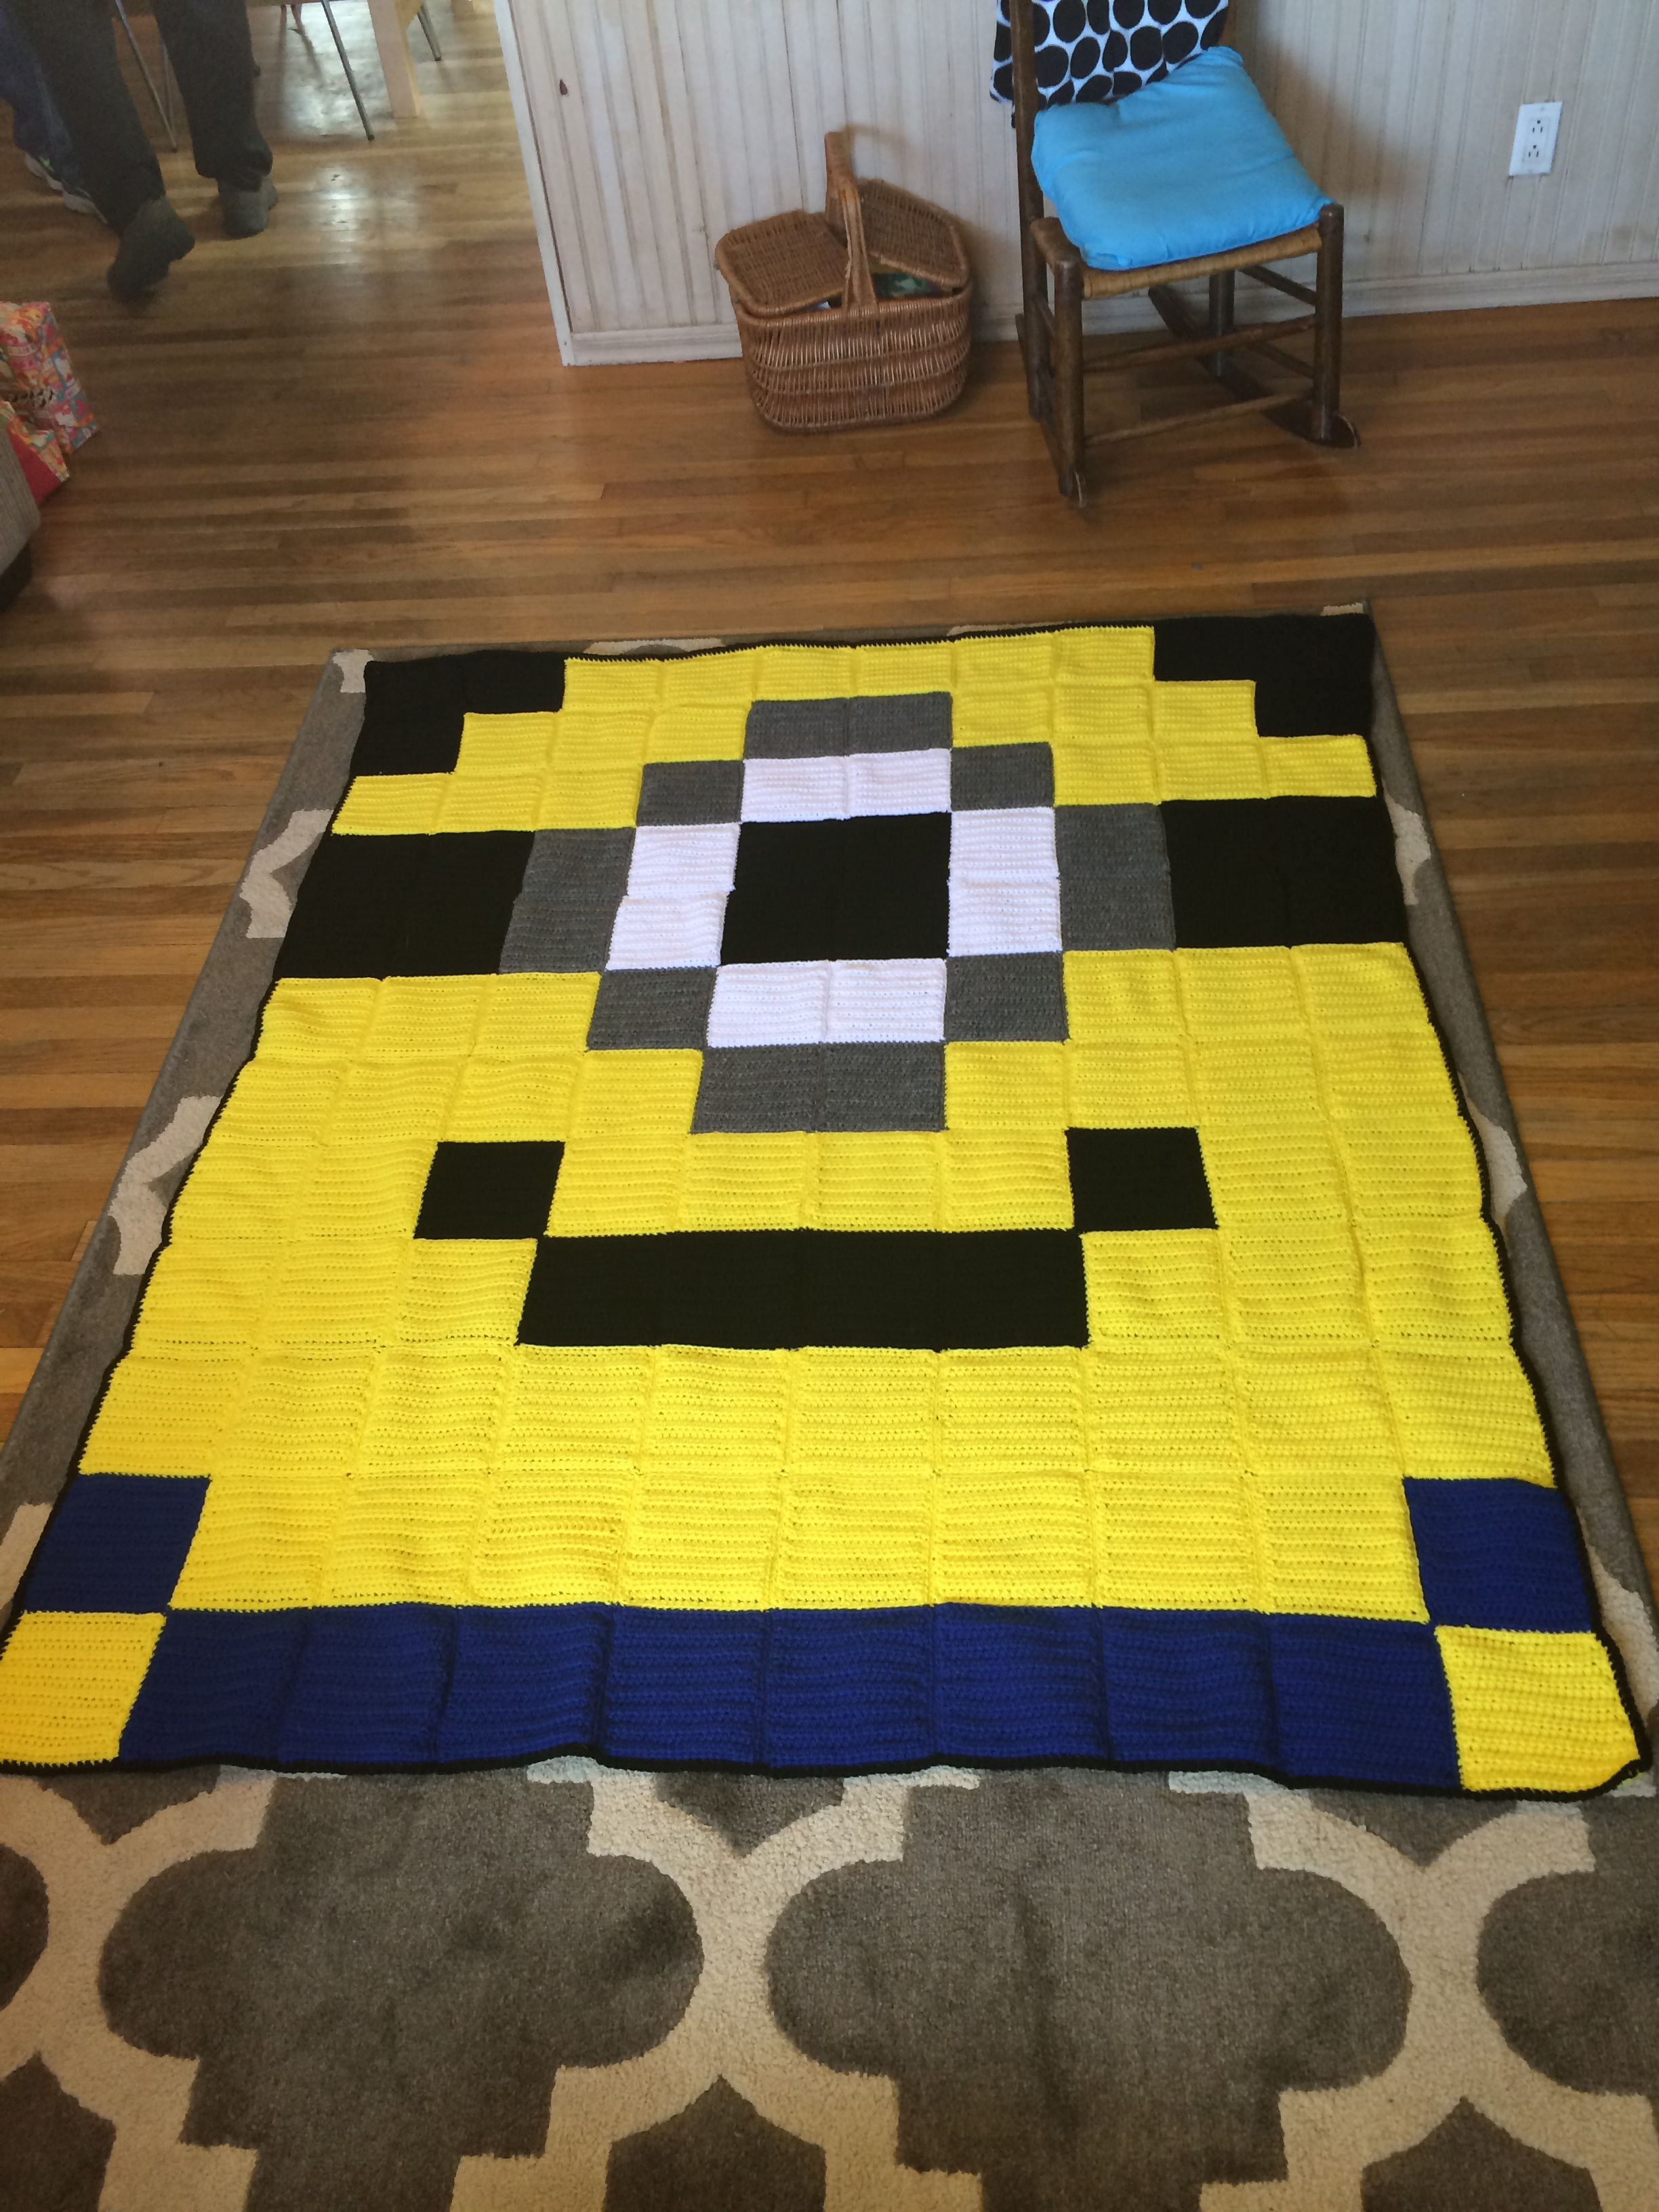 8bit Minion pixel crochet blanket - Crocheted Creations by Nana